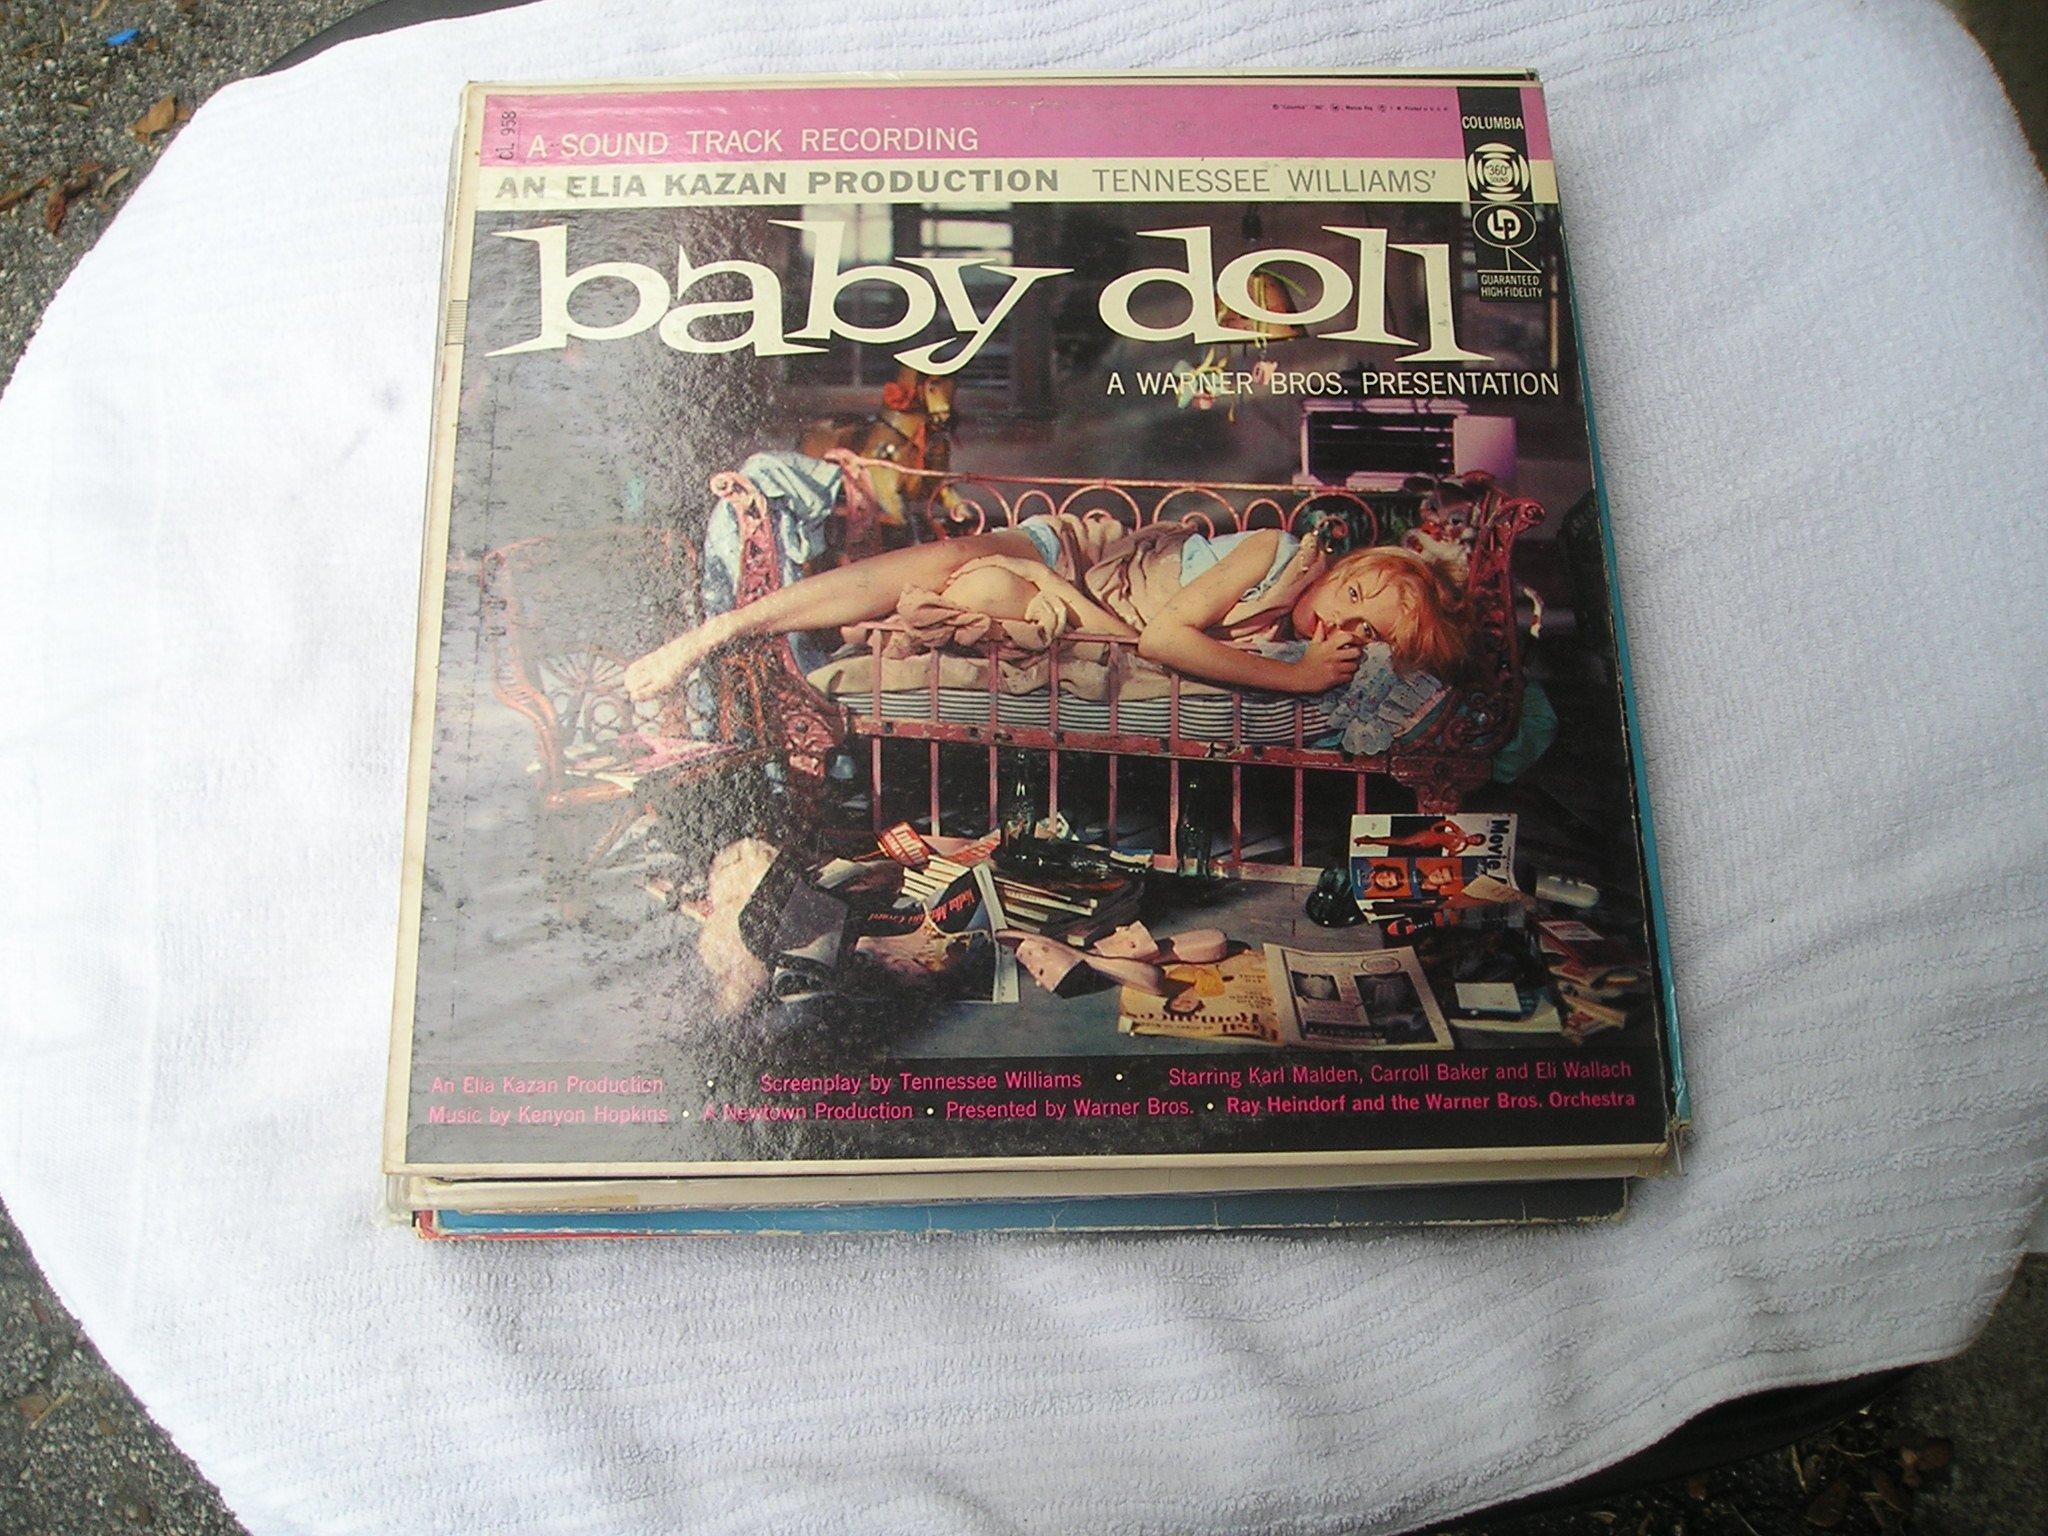 baby doll vinyl lp a sound track recording an elia kazan production baby doll starring karl malden carroll baker and eli wallach etcetc a warner bros presentation ray heindorf and the warner bros orchestra with smiley lewis